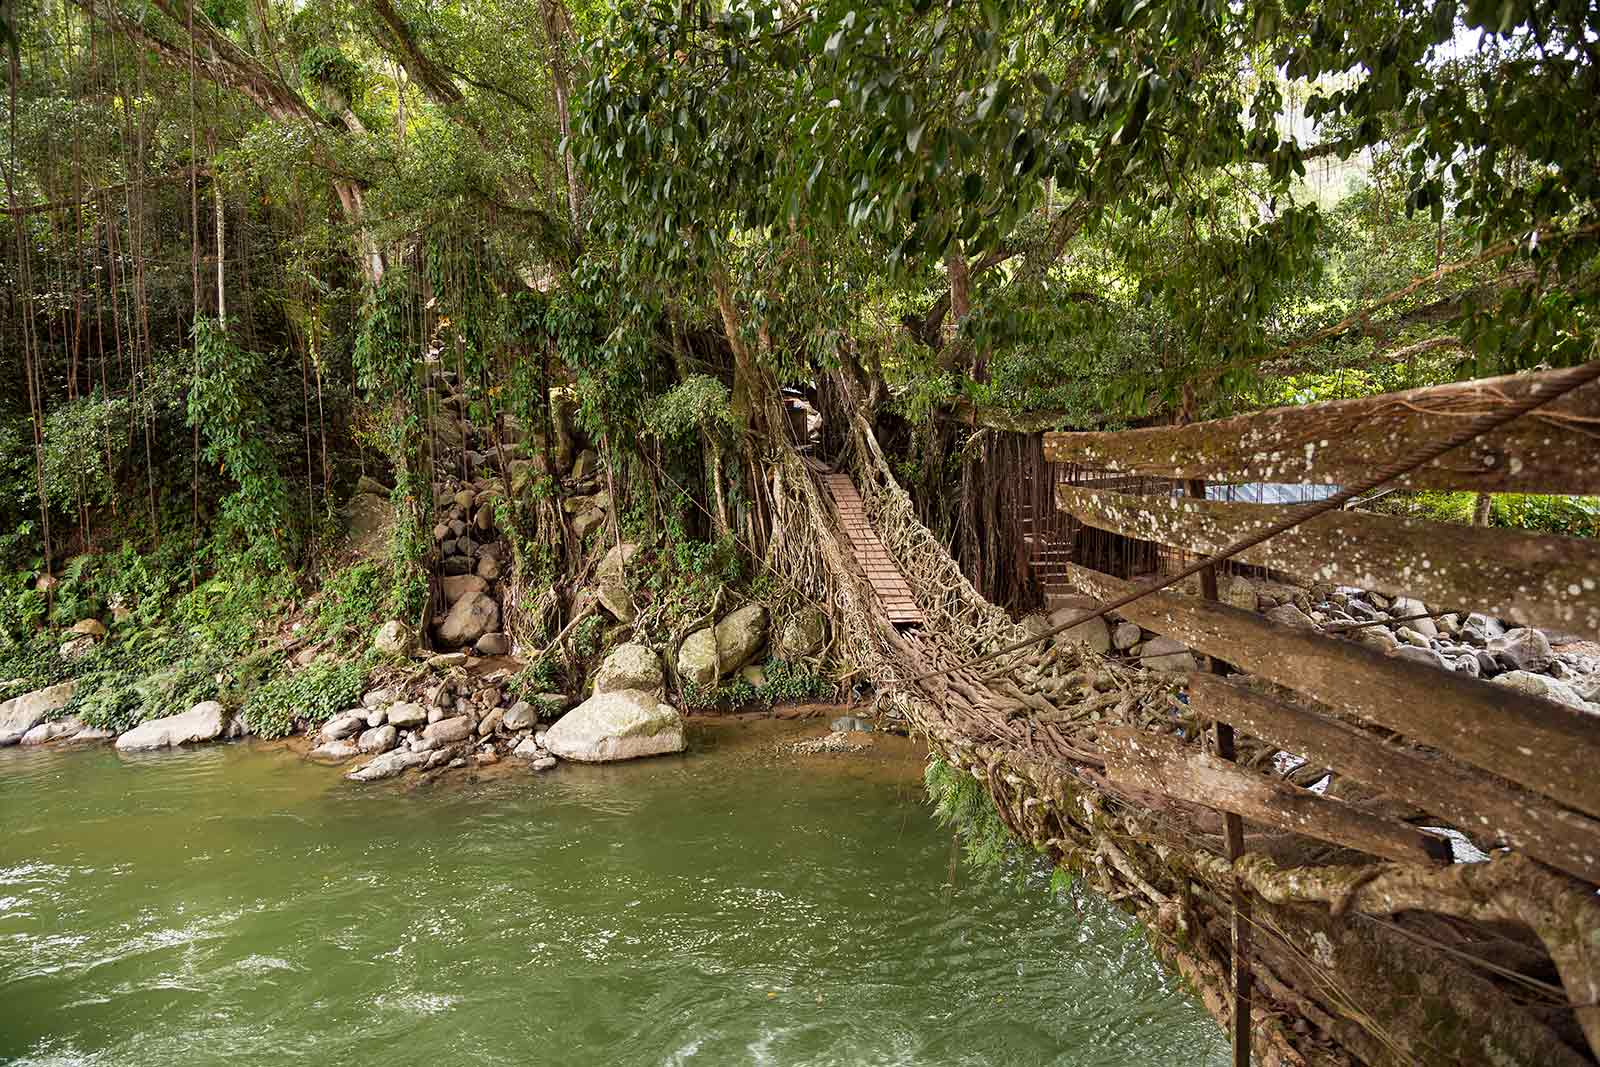 living-root-bridge-sumatra-padang-indonesia-1